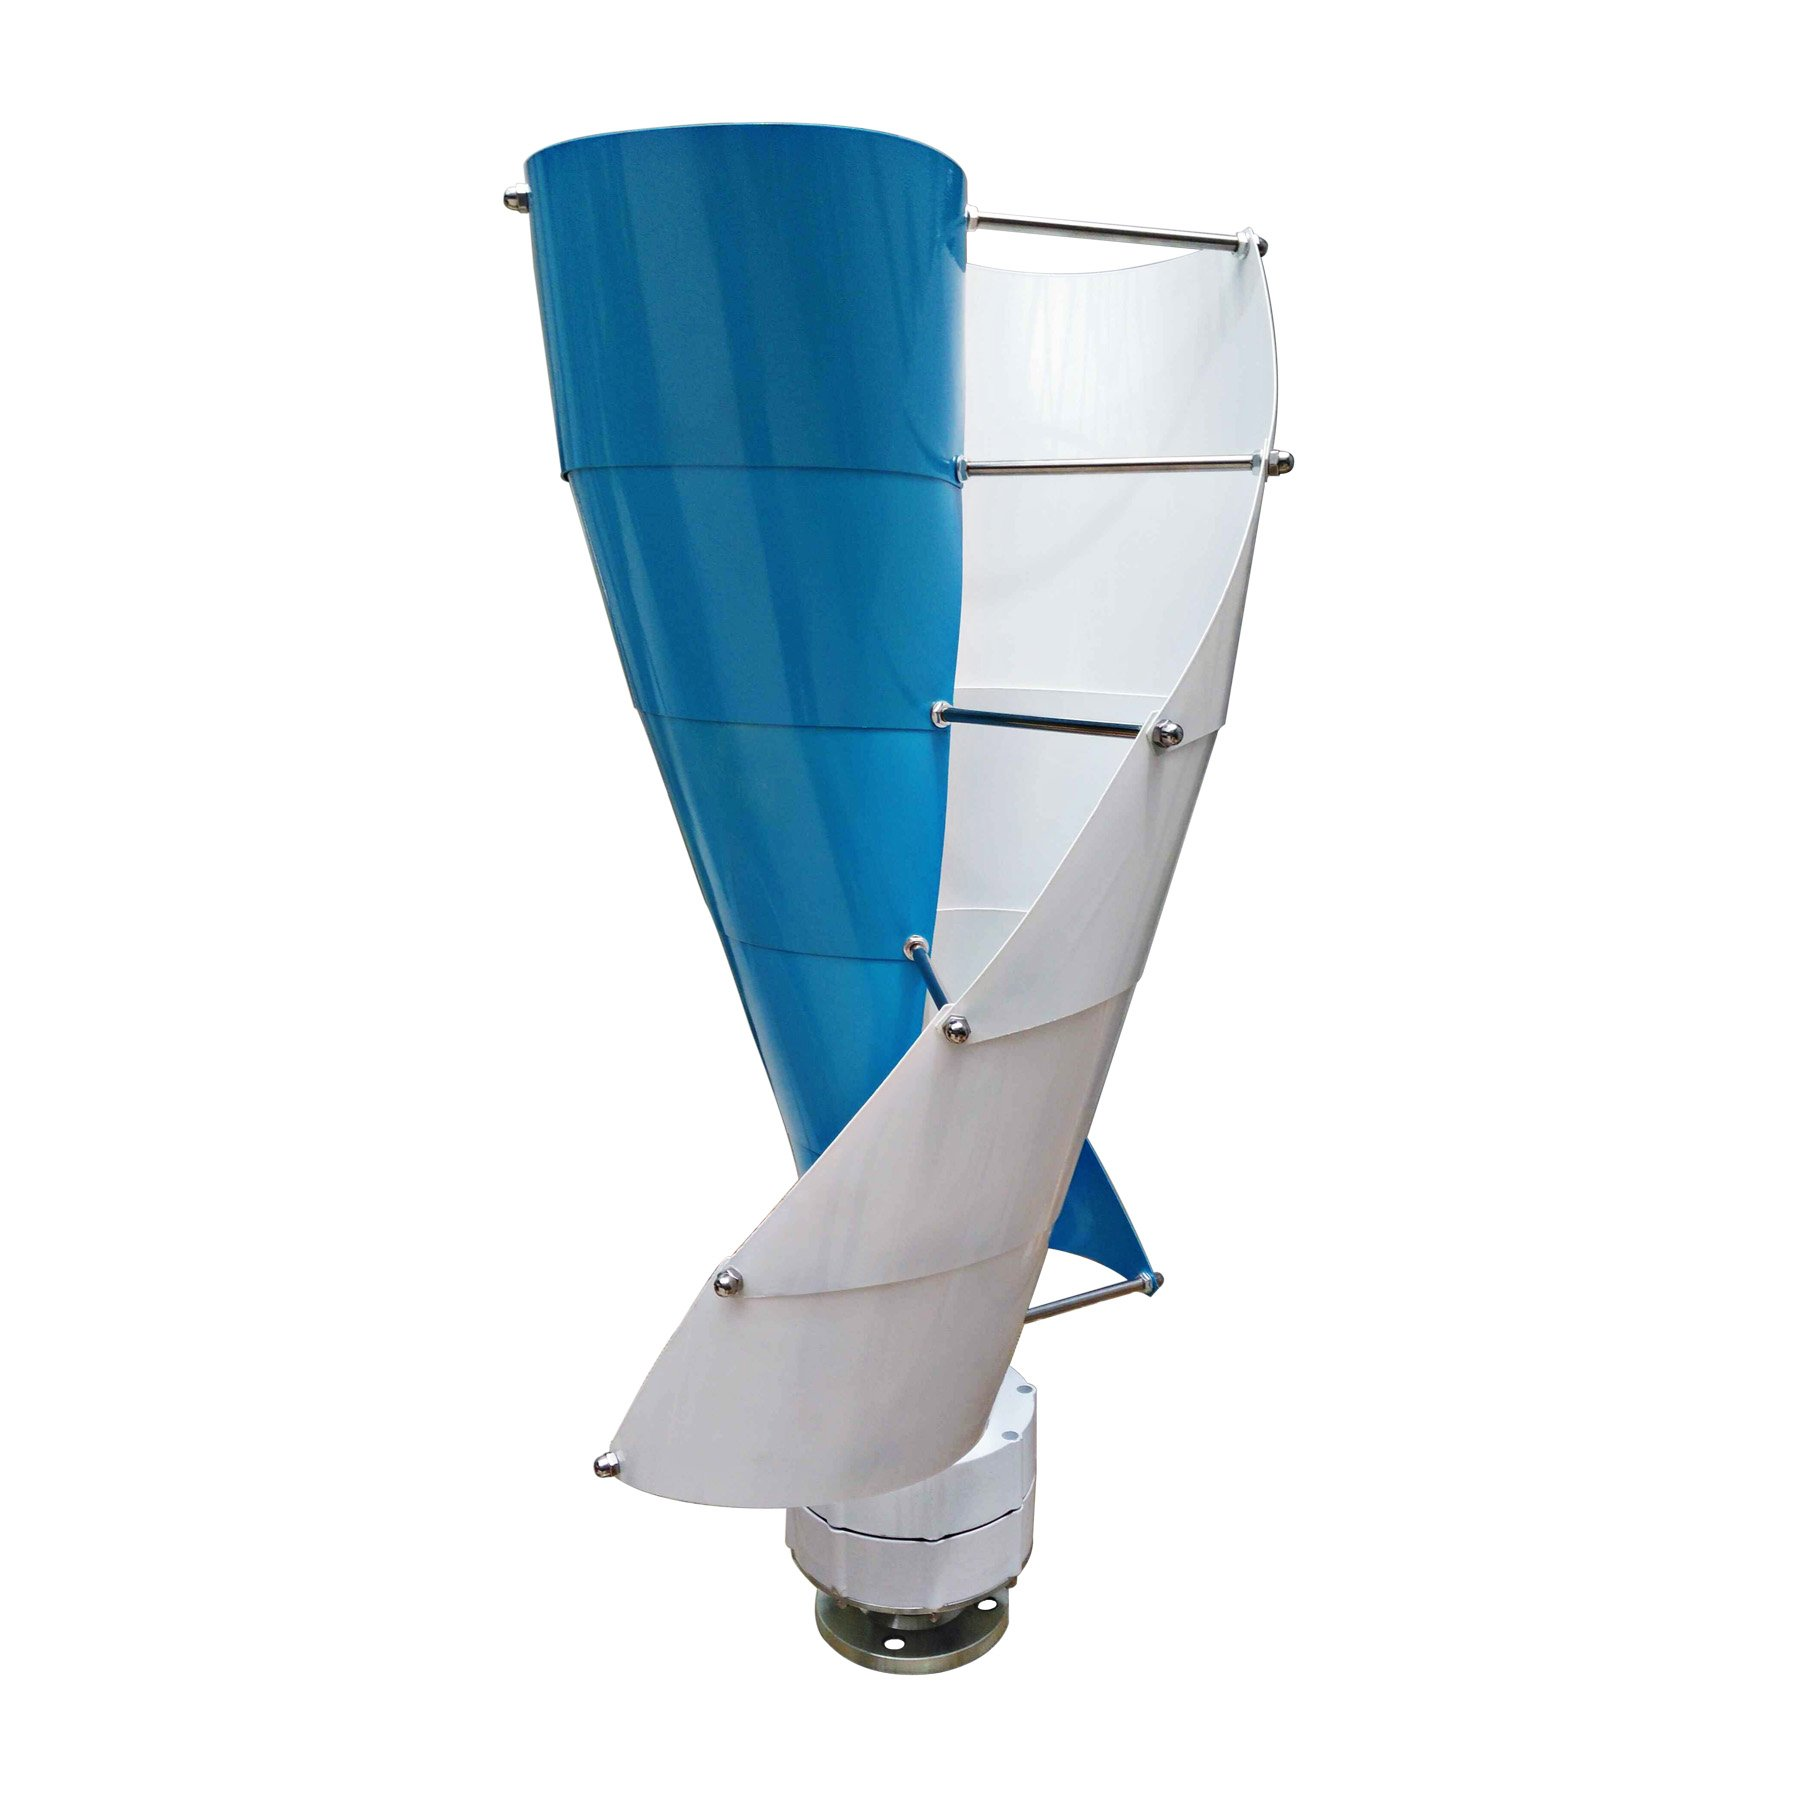 Spiral Wind Turbine Generator Vertical Axis Type 100-400W Three Phase Permanent Magnet AC Synchronous including a controller